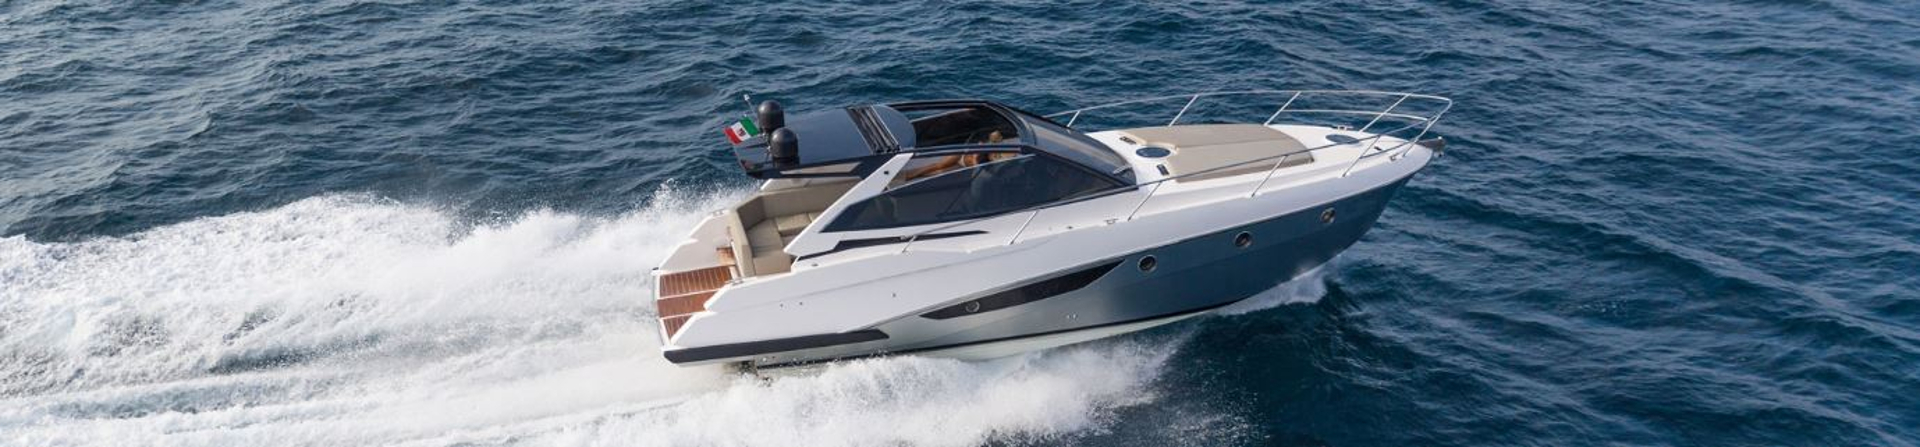 Motor yachts charter in France